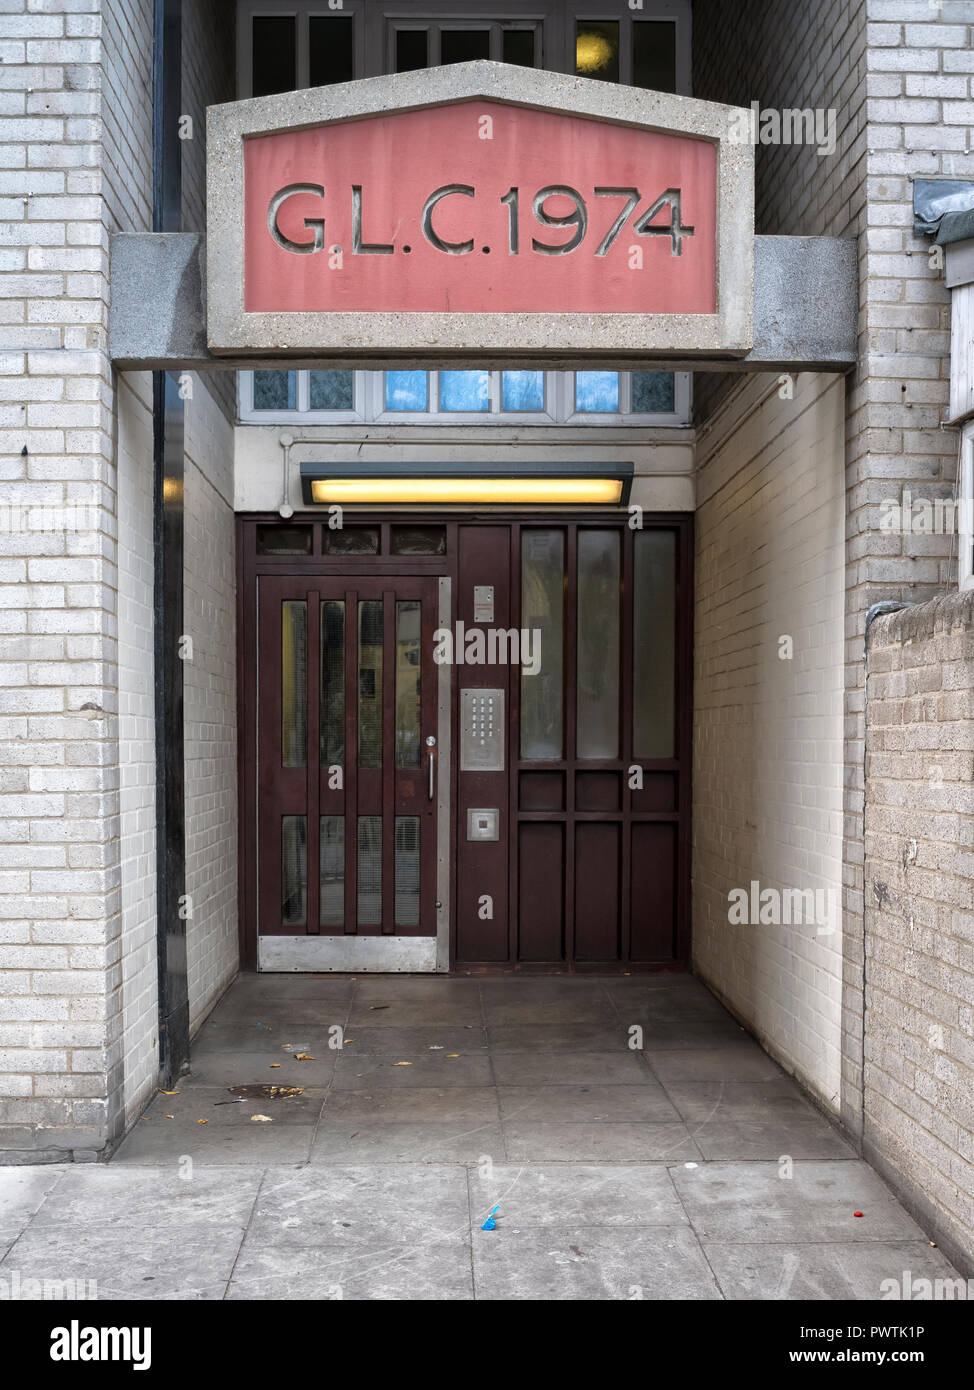 Entrance to local authority flats in Hanbury Street, Whitechapel with the legend GLC 1974 above the entrance - Stock Image